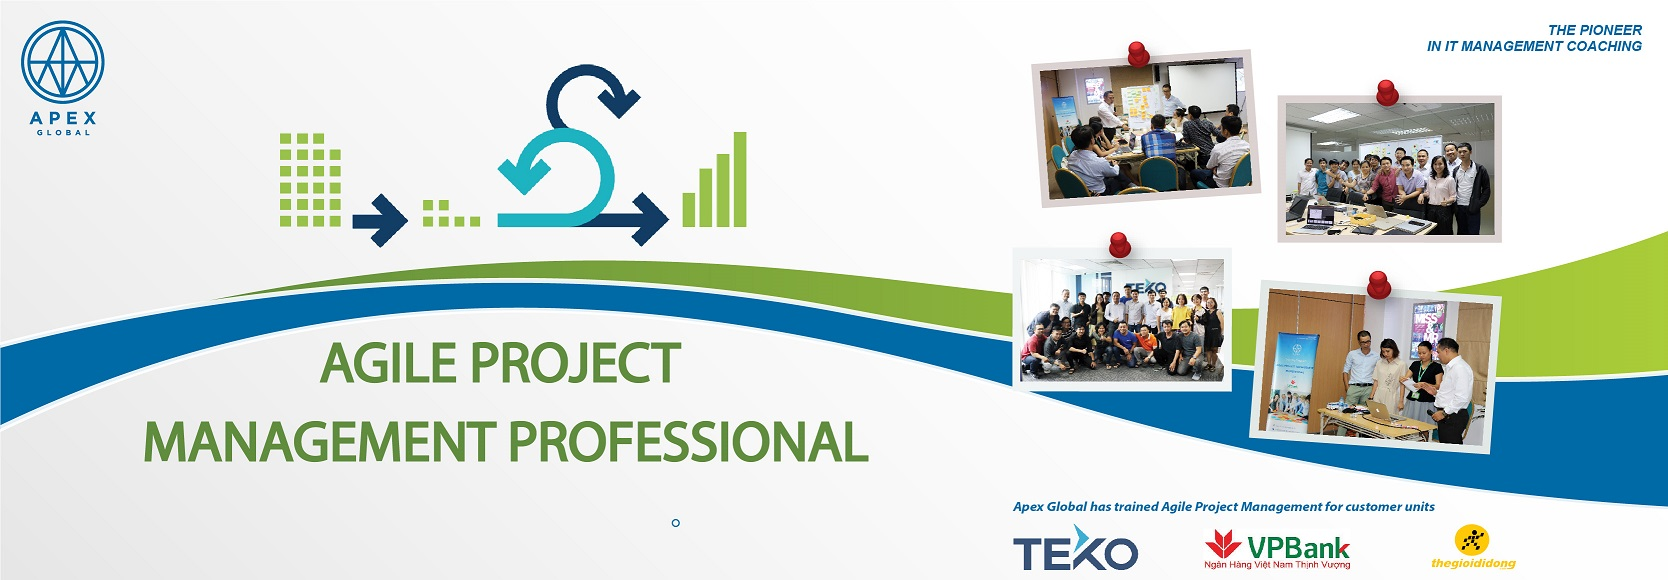 Agile-Project-Management-Professional